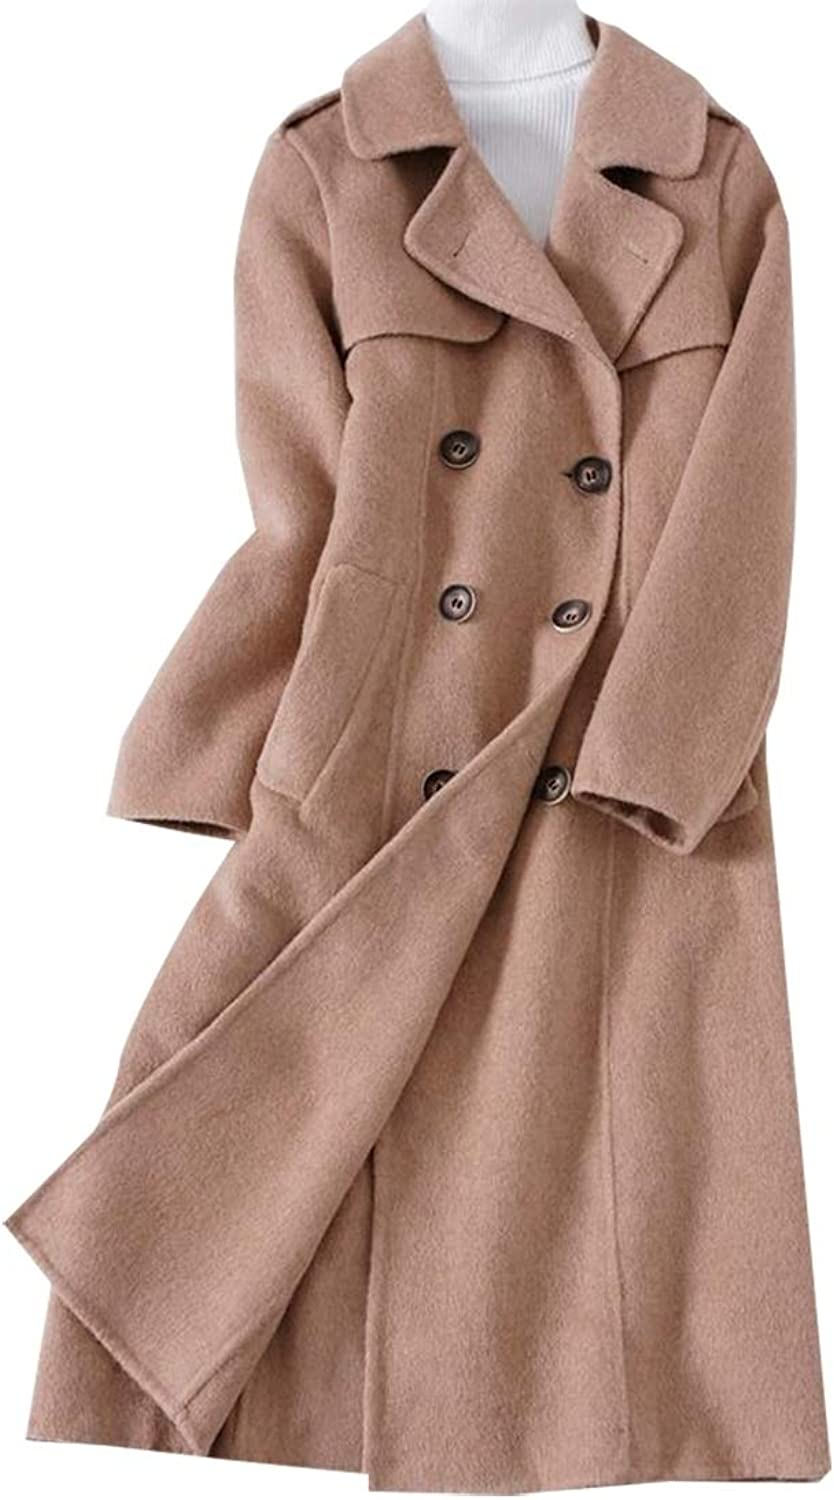 Sanderso Women's Classic Trench Coat DoubleBreasted Hooded Overcoat with Belt